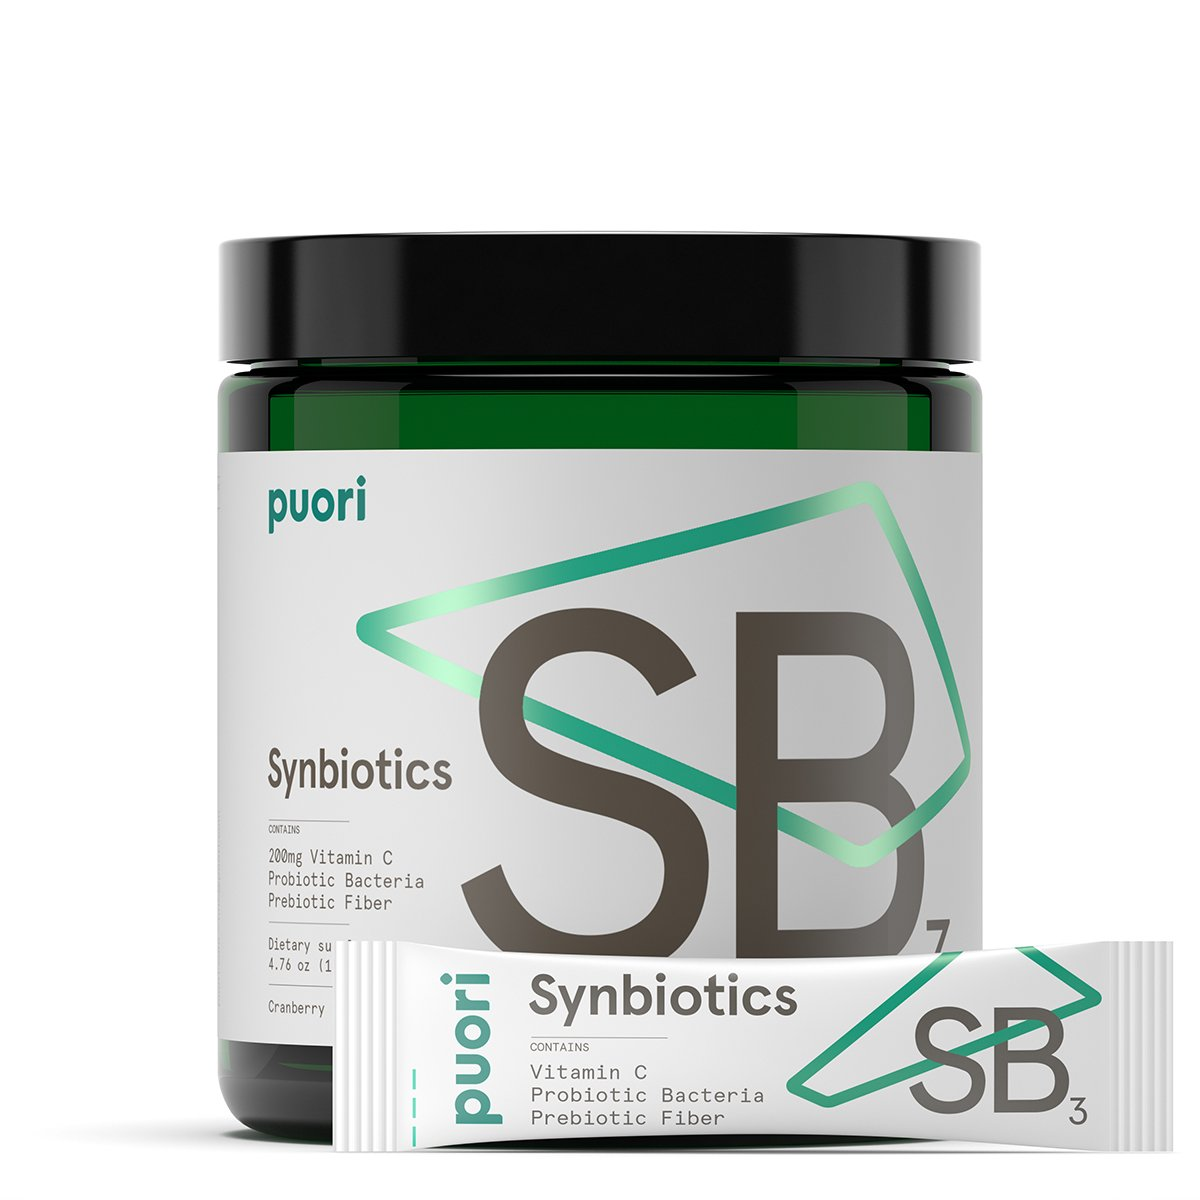 Puori - SB3 Probiotics & Prebiotics, Fiber 4g, Vitamin C 200mg, Bifidobacterium 3.5 Billion CFU, Lactobacillus Fermentum 9.5 Billion CFU, 30 Servings